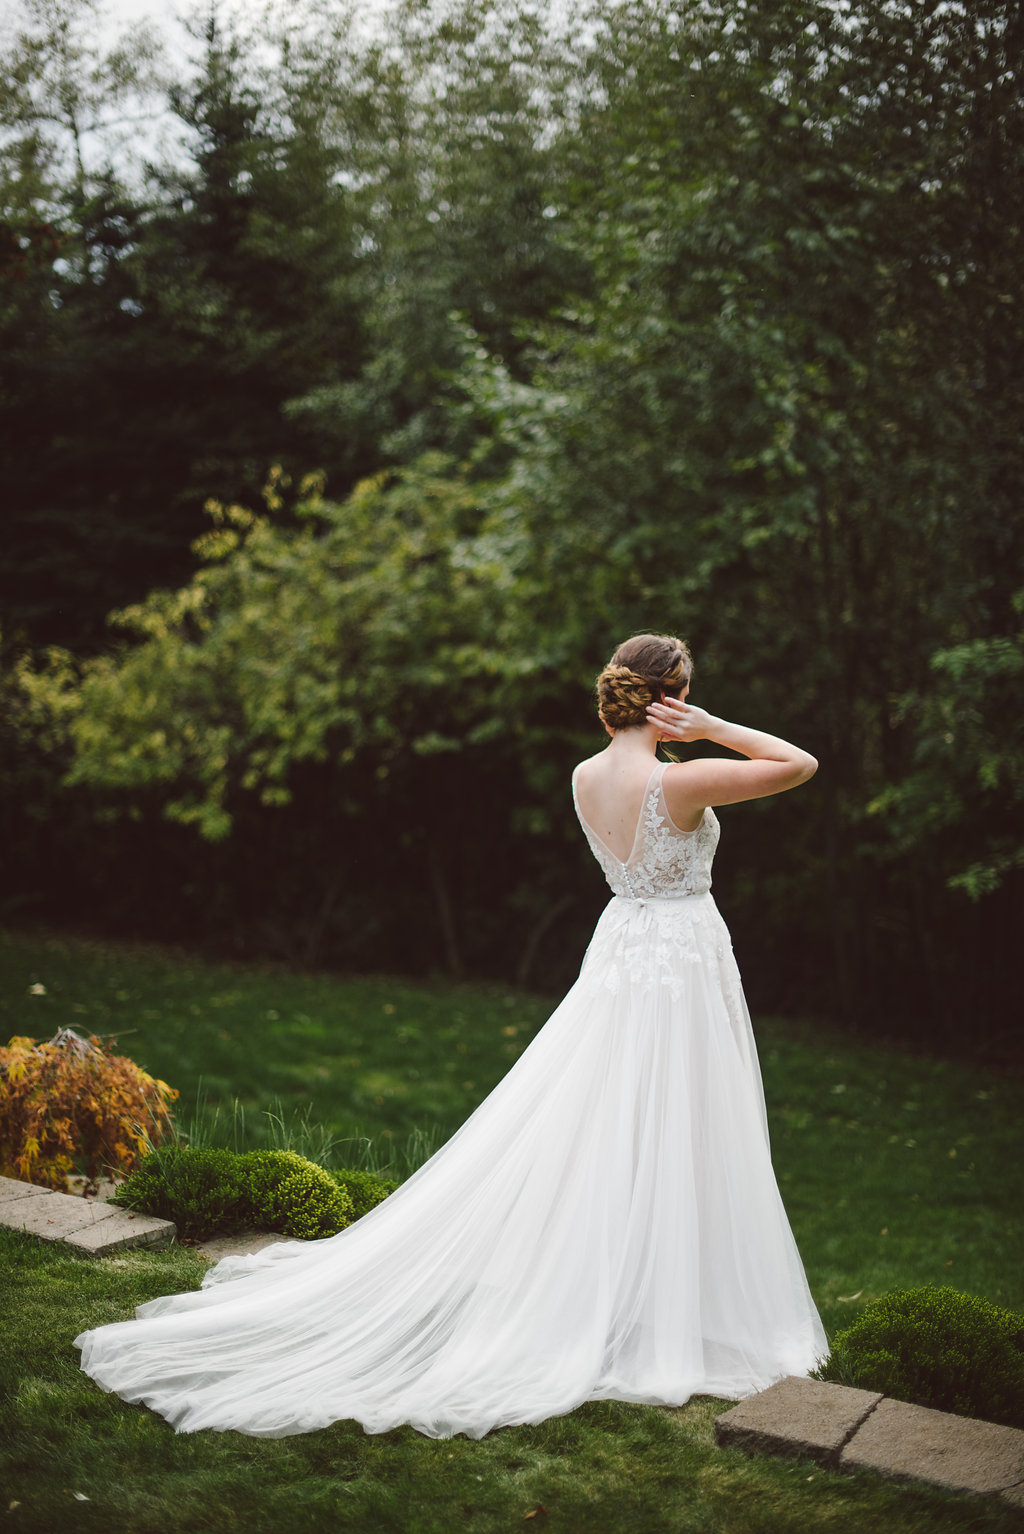 BHLDN Reagan Wedding Dress - Fall Wedding Bouquet - Vintage Bridal Hairstyle - STYLED WEDDING SHOOT | A Romantic Vintage Fall Wedding